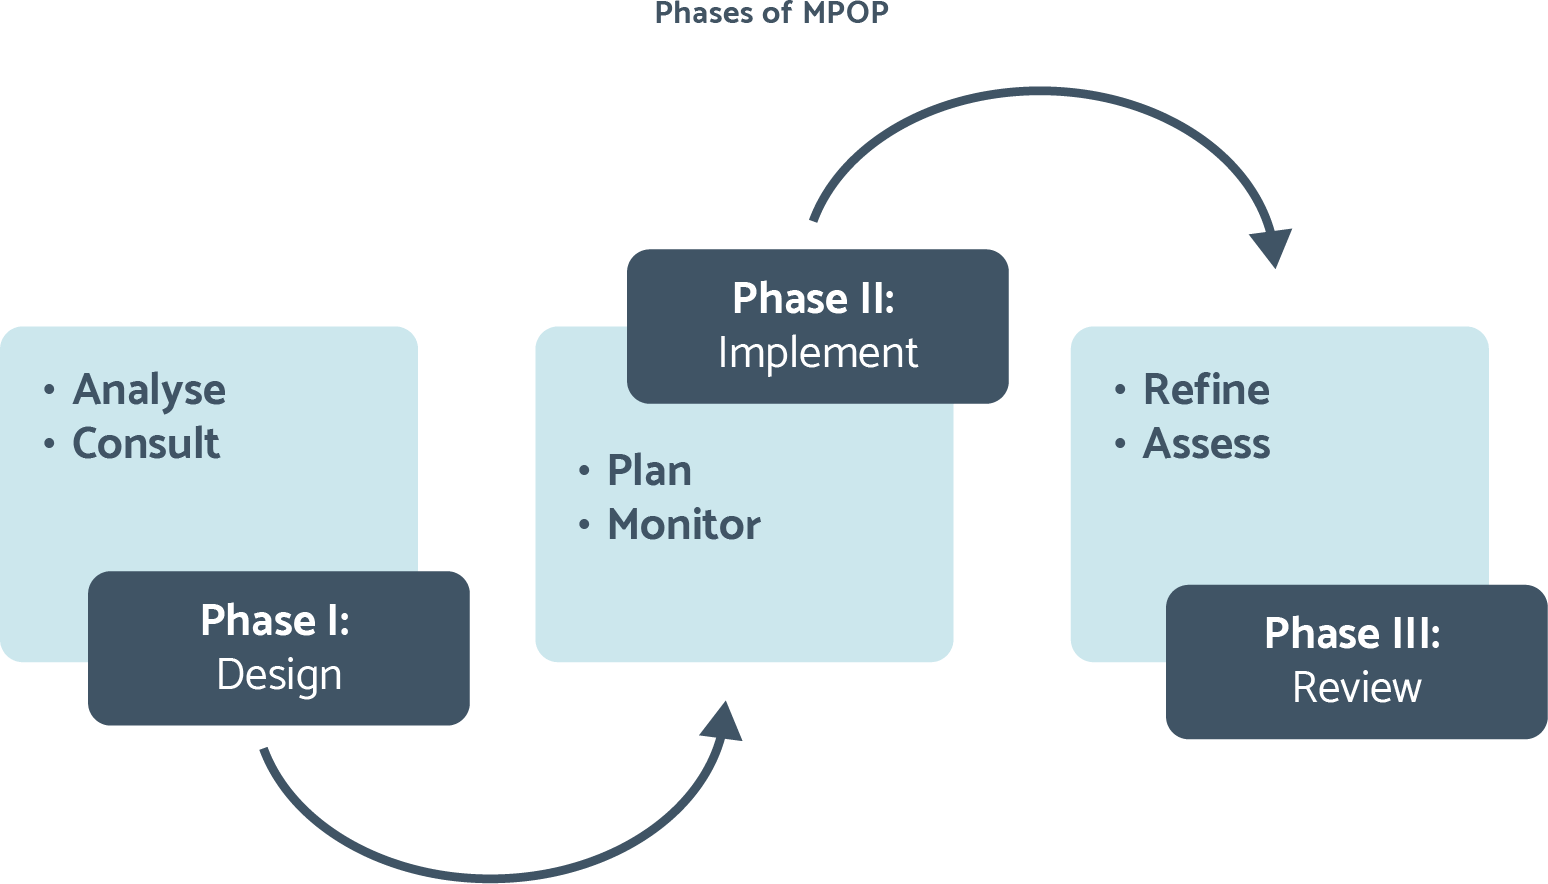 Delivery phases of MPOP